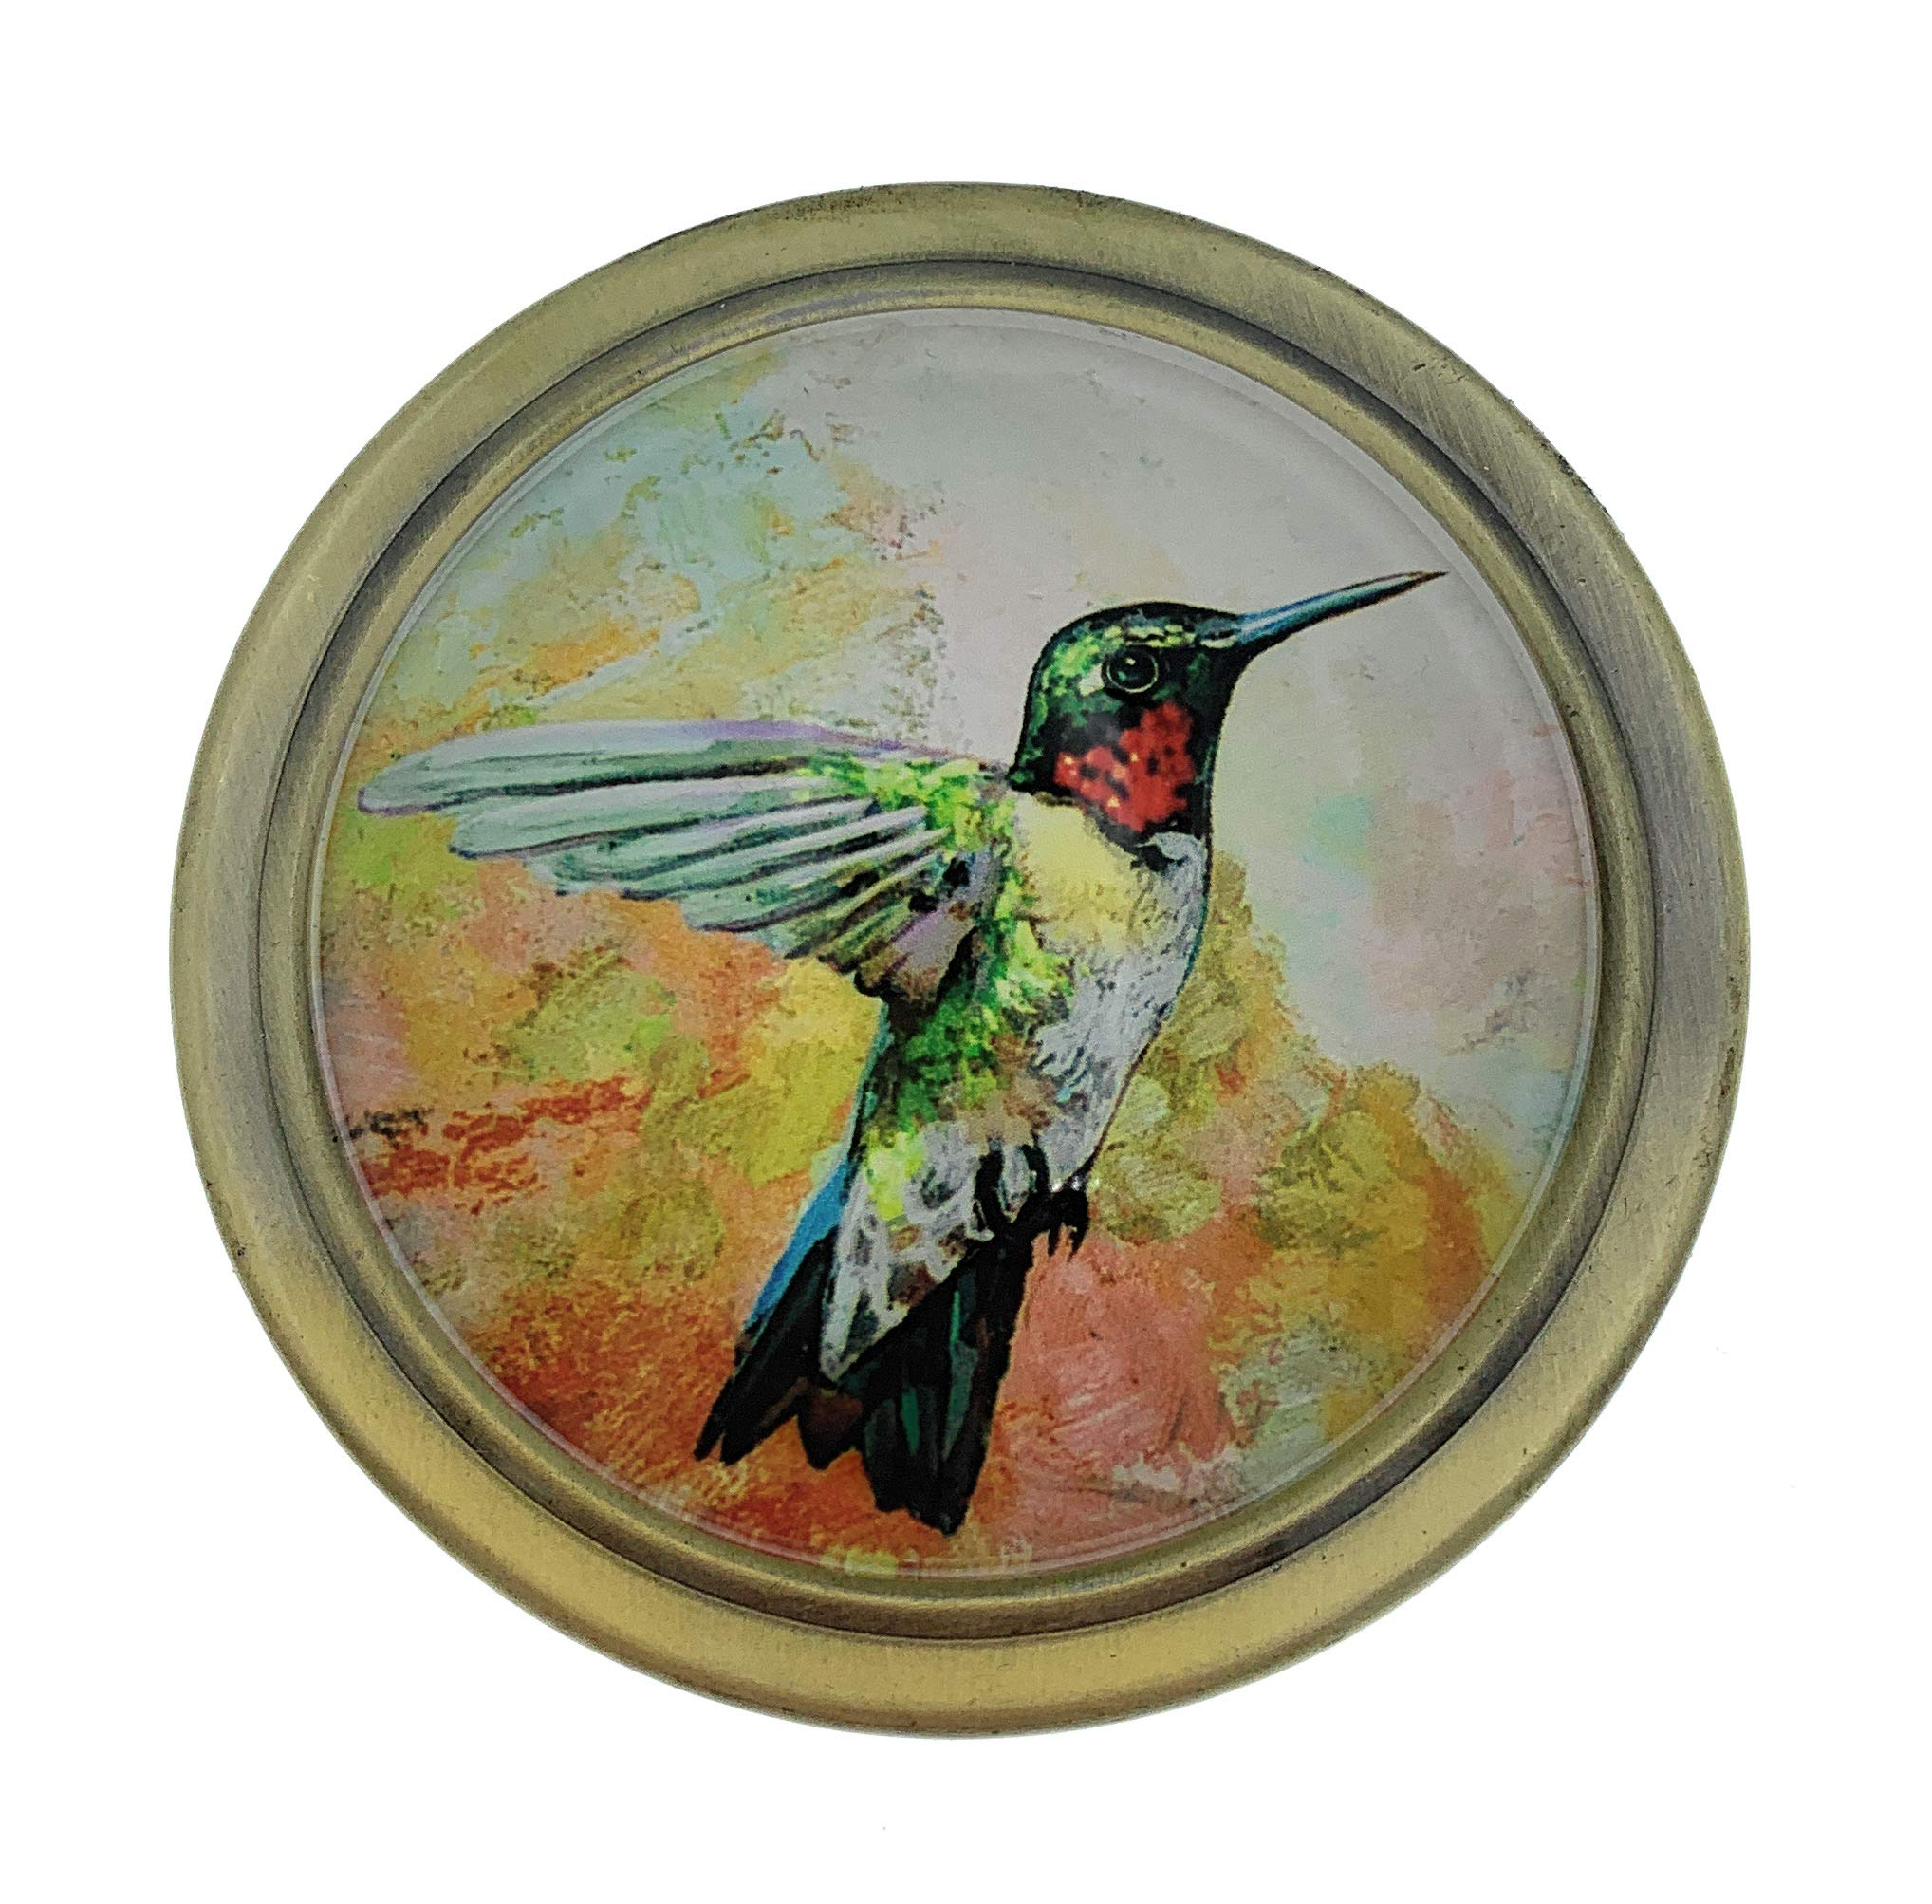 Value Arts Hummingbird Folding Magnifying Glass Paperweight, 2.5 Inches Diameter by Value Arts